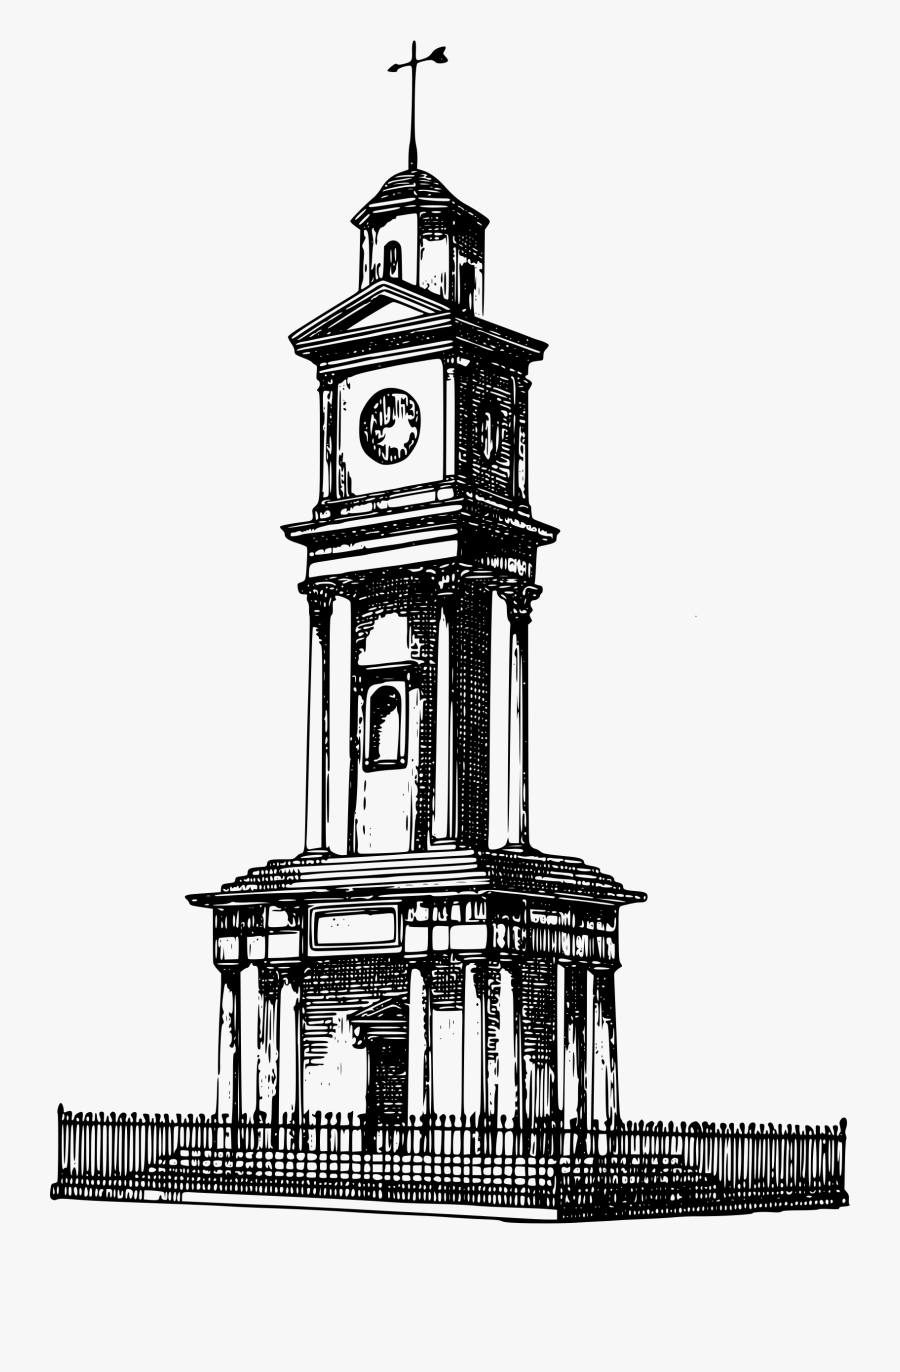 Tower Clock Clipart - Clock Tower Drawing Png, Transparent Clipart